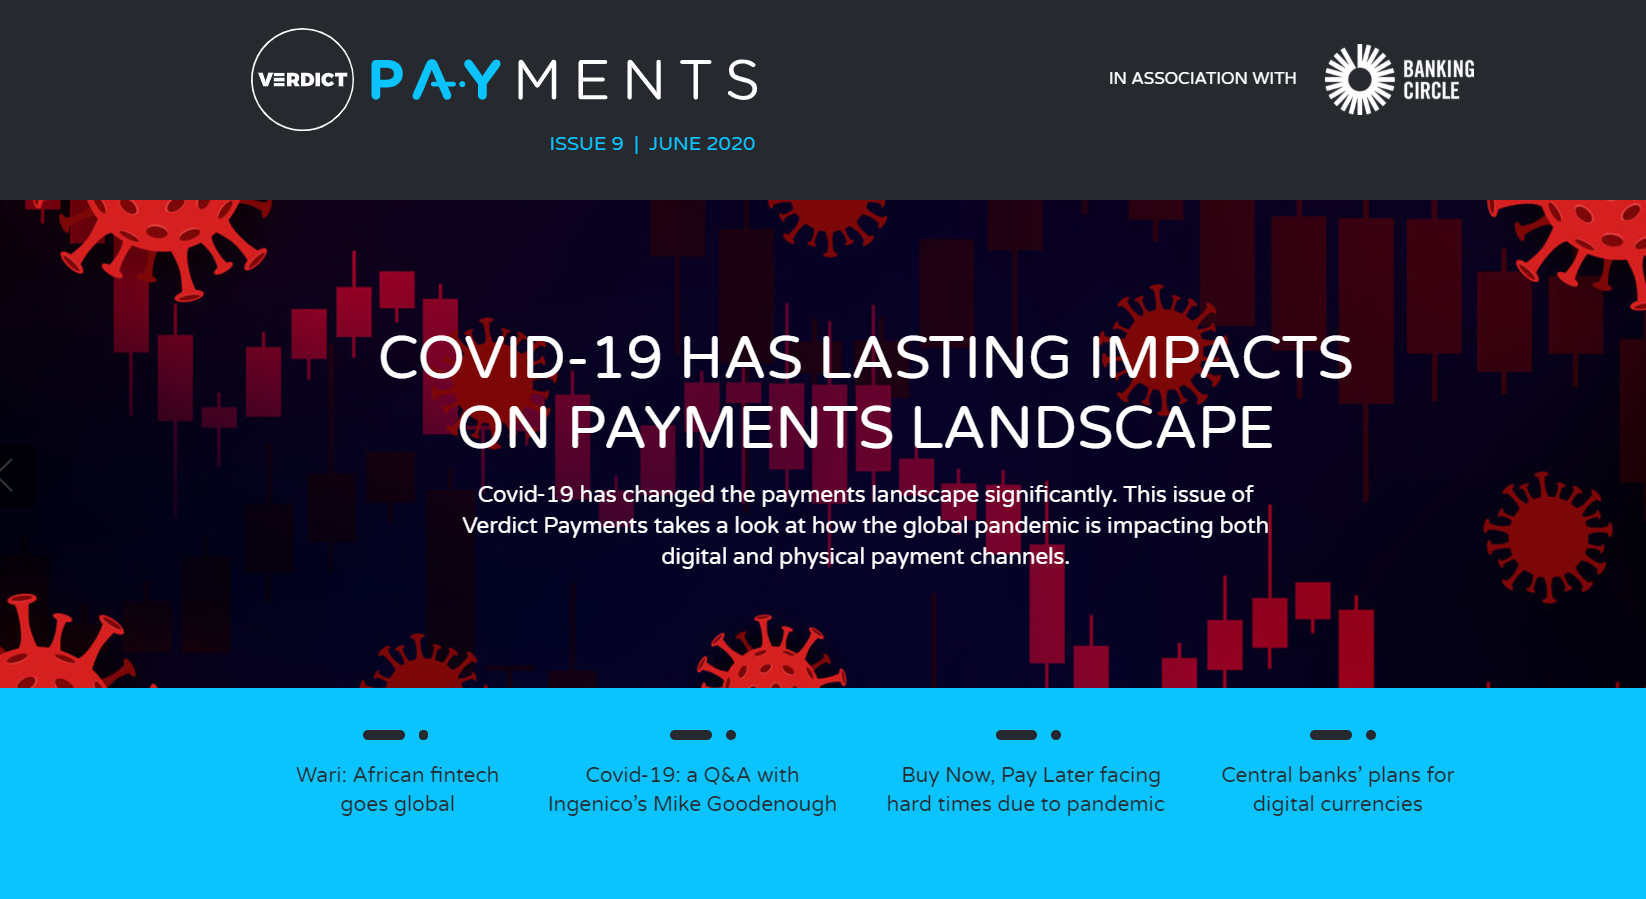 payments digi issue 9 cover -